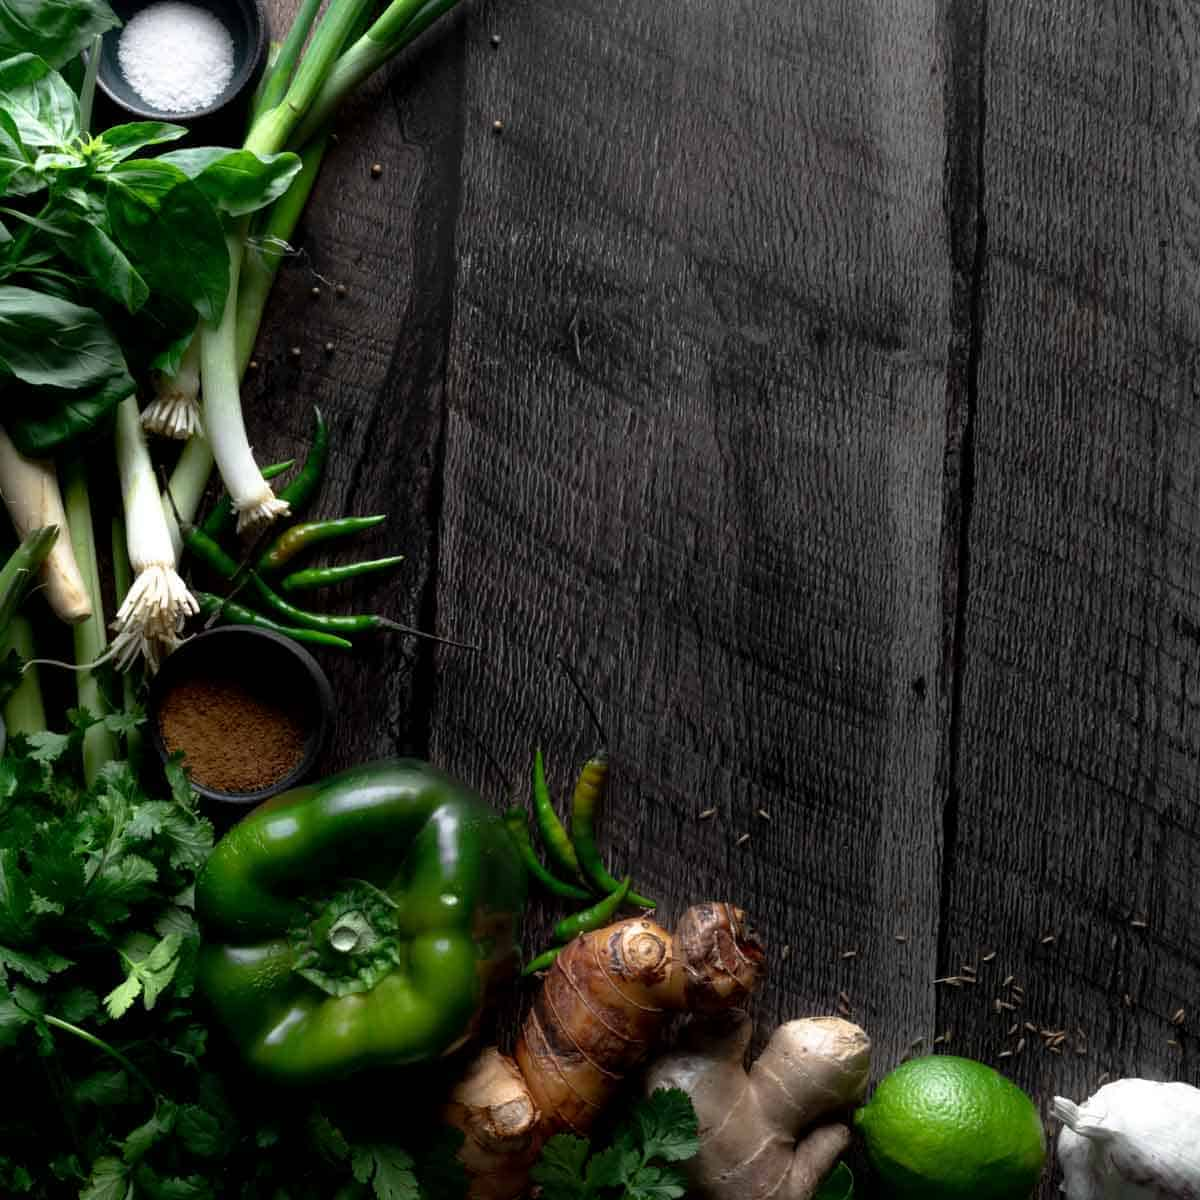 All of the ingredients need to make Thai Green Curry Paste at home